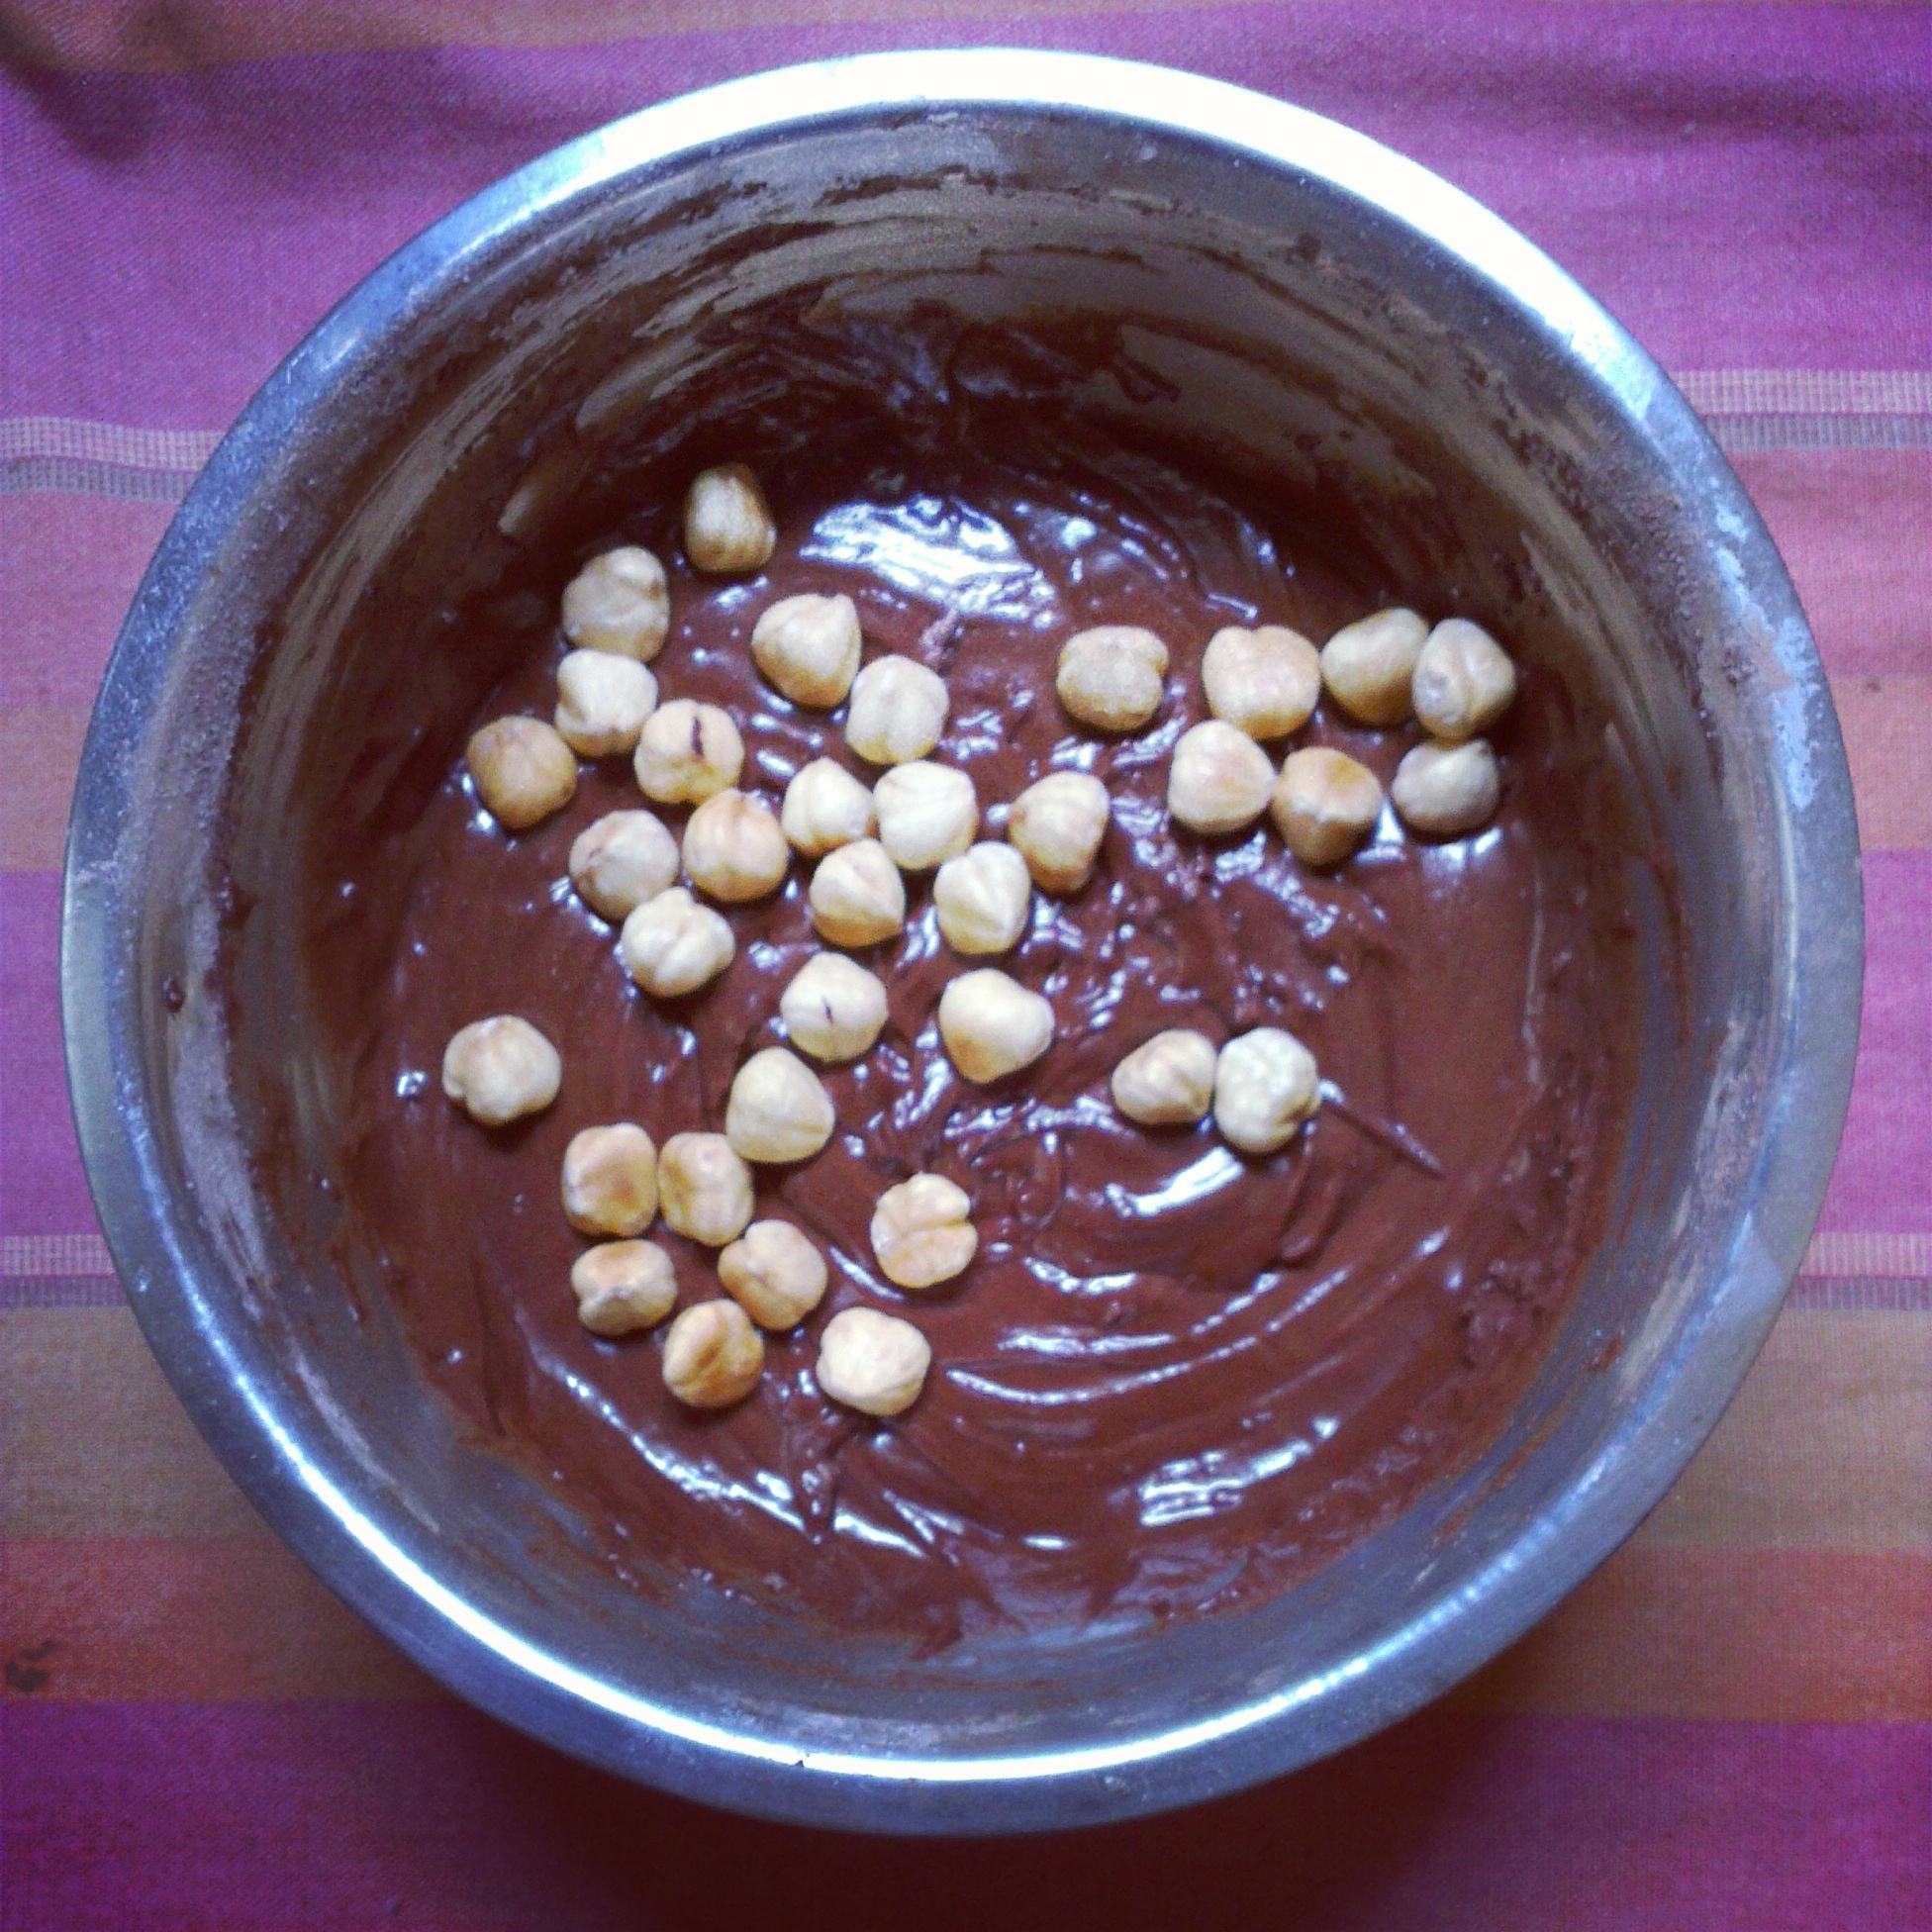 Chocolate dough with roasted hazelnuts